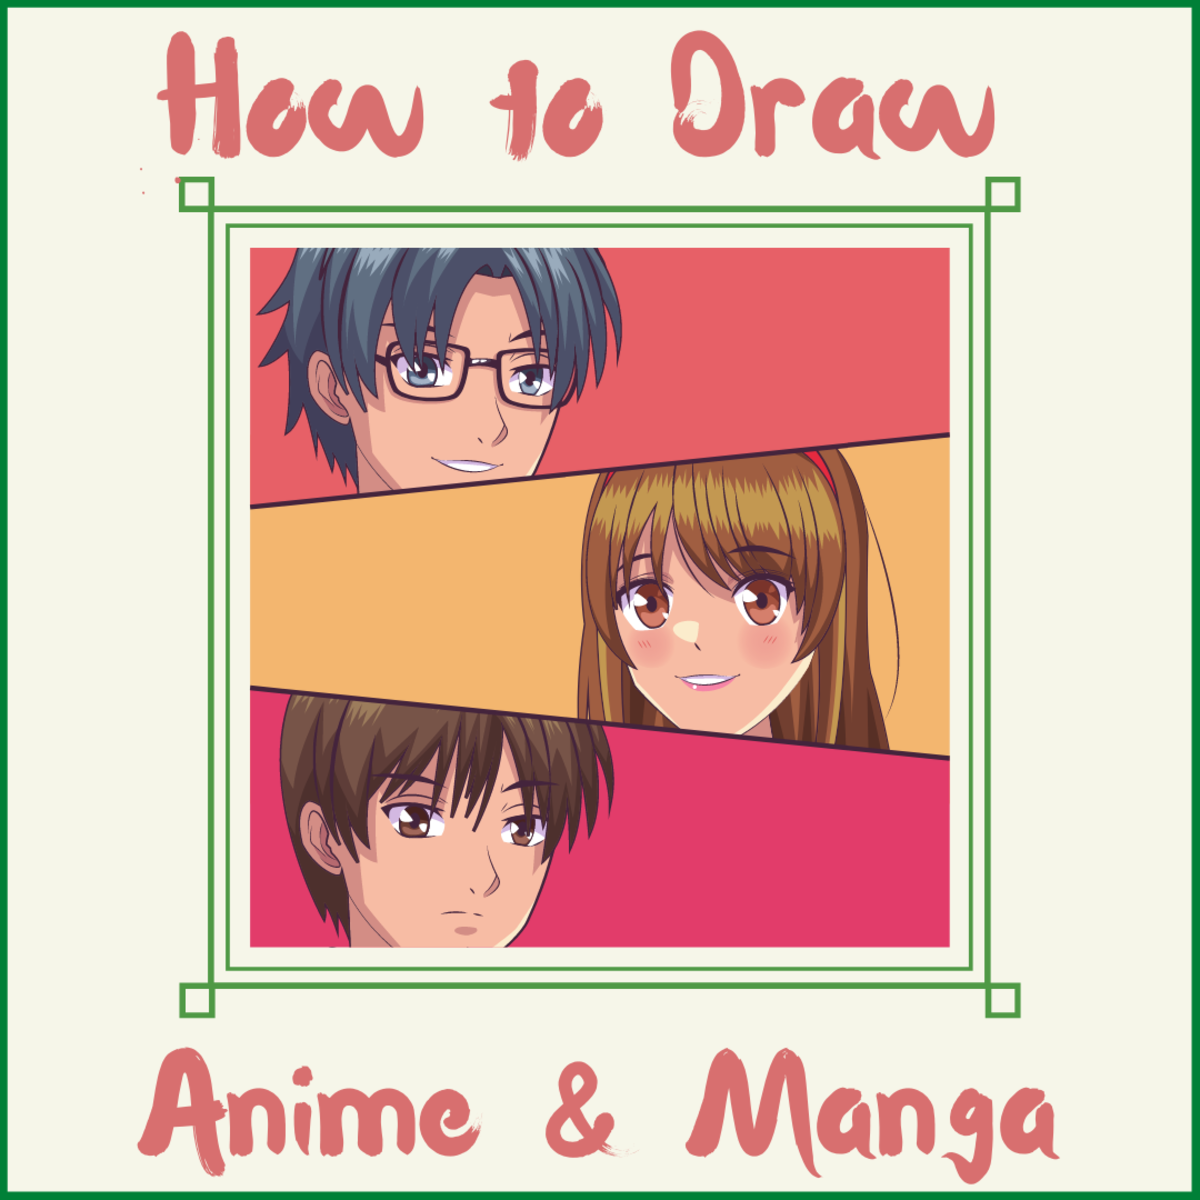 Learn to draw the anime and manga you've always wanted to create!